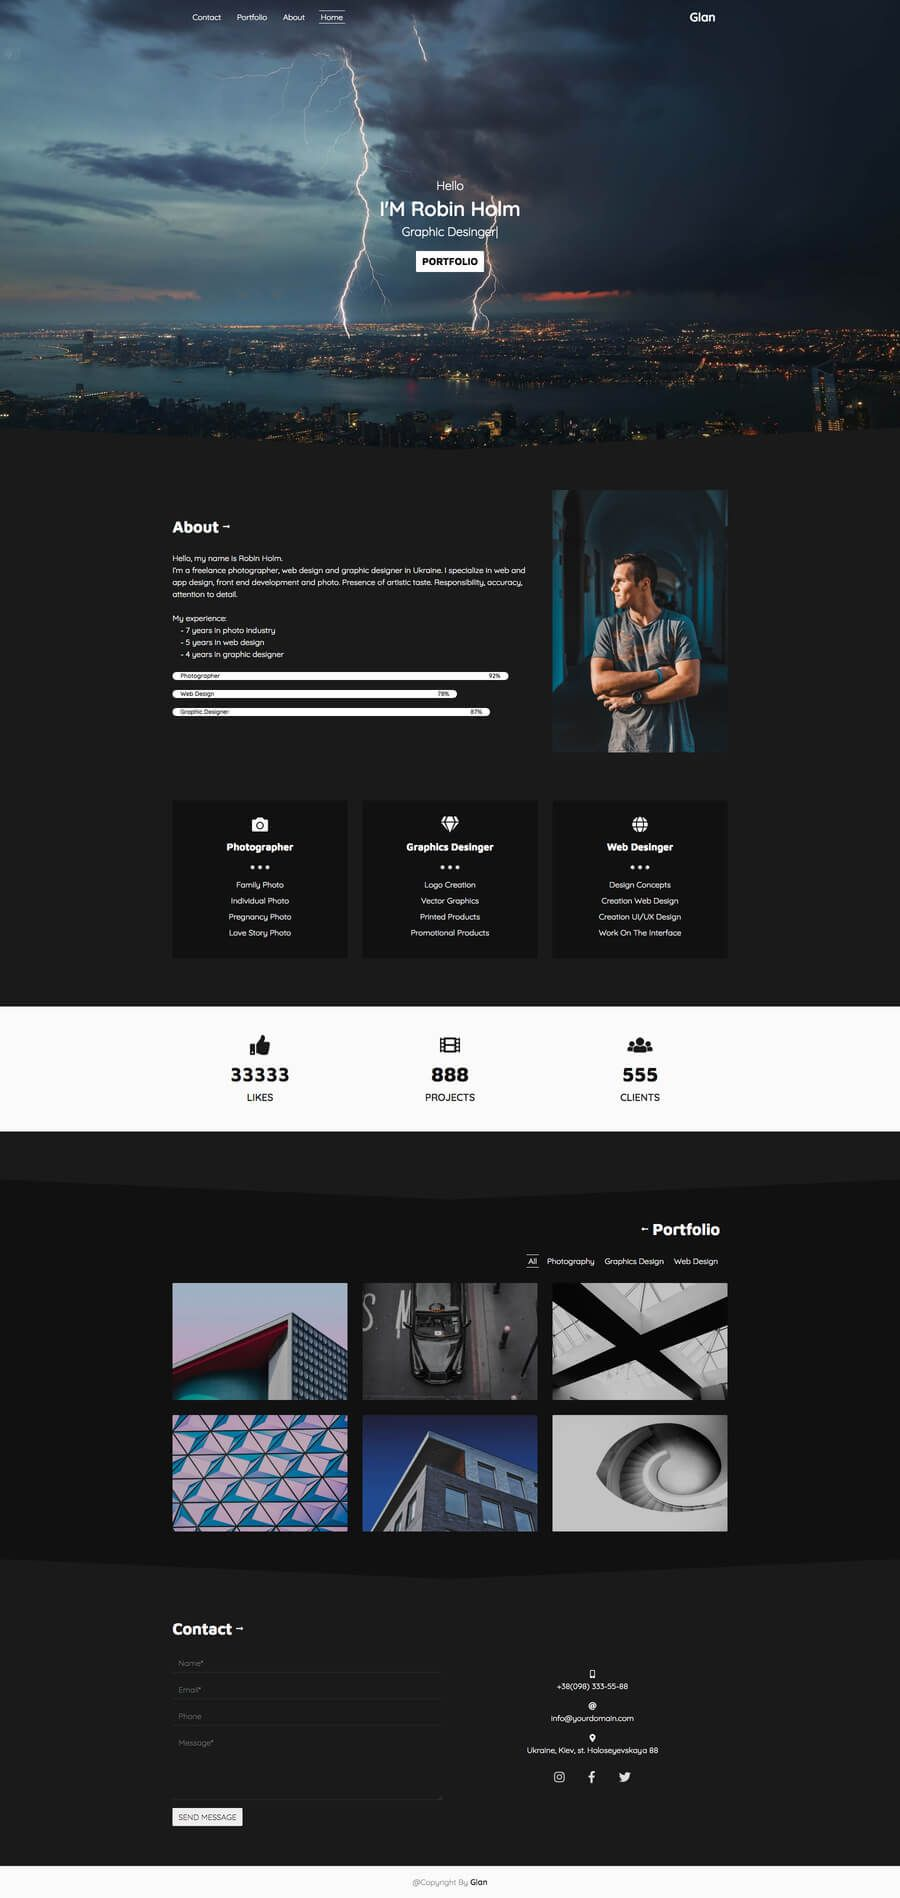 Glan One Page Portfolio Bootstrap 4 Web Layout Design Portfolio Business Card Design Inspiration